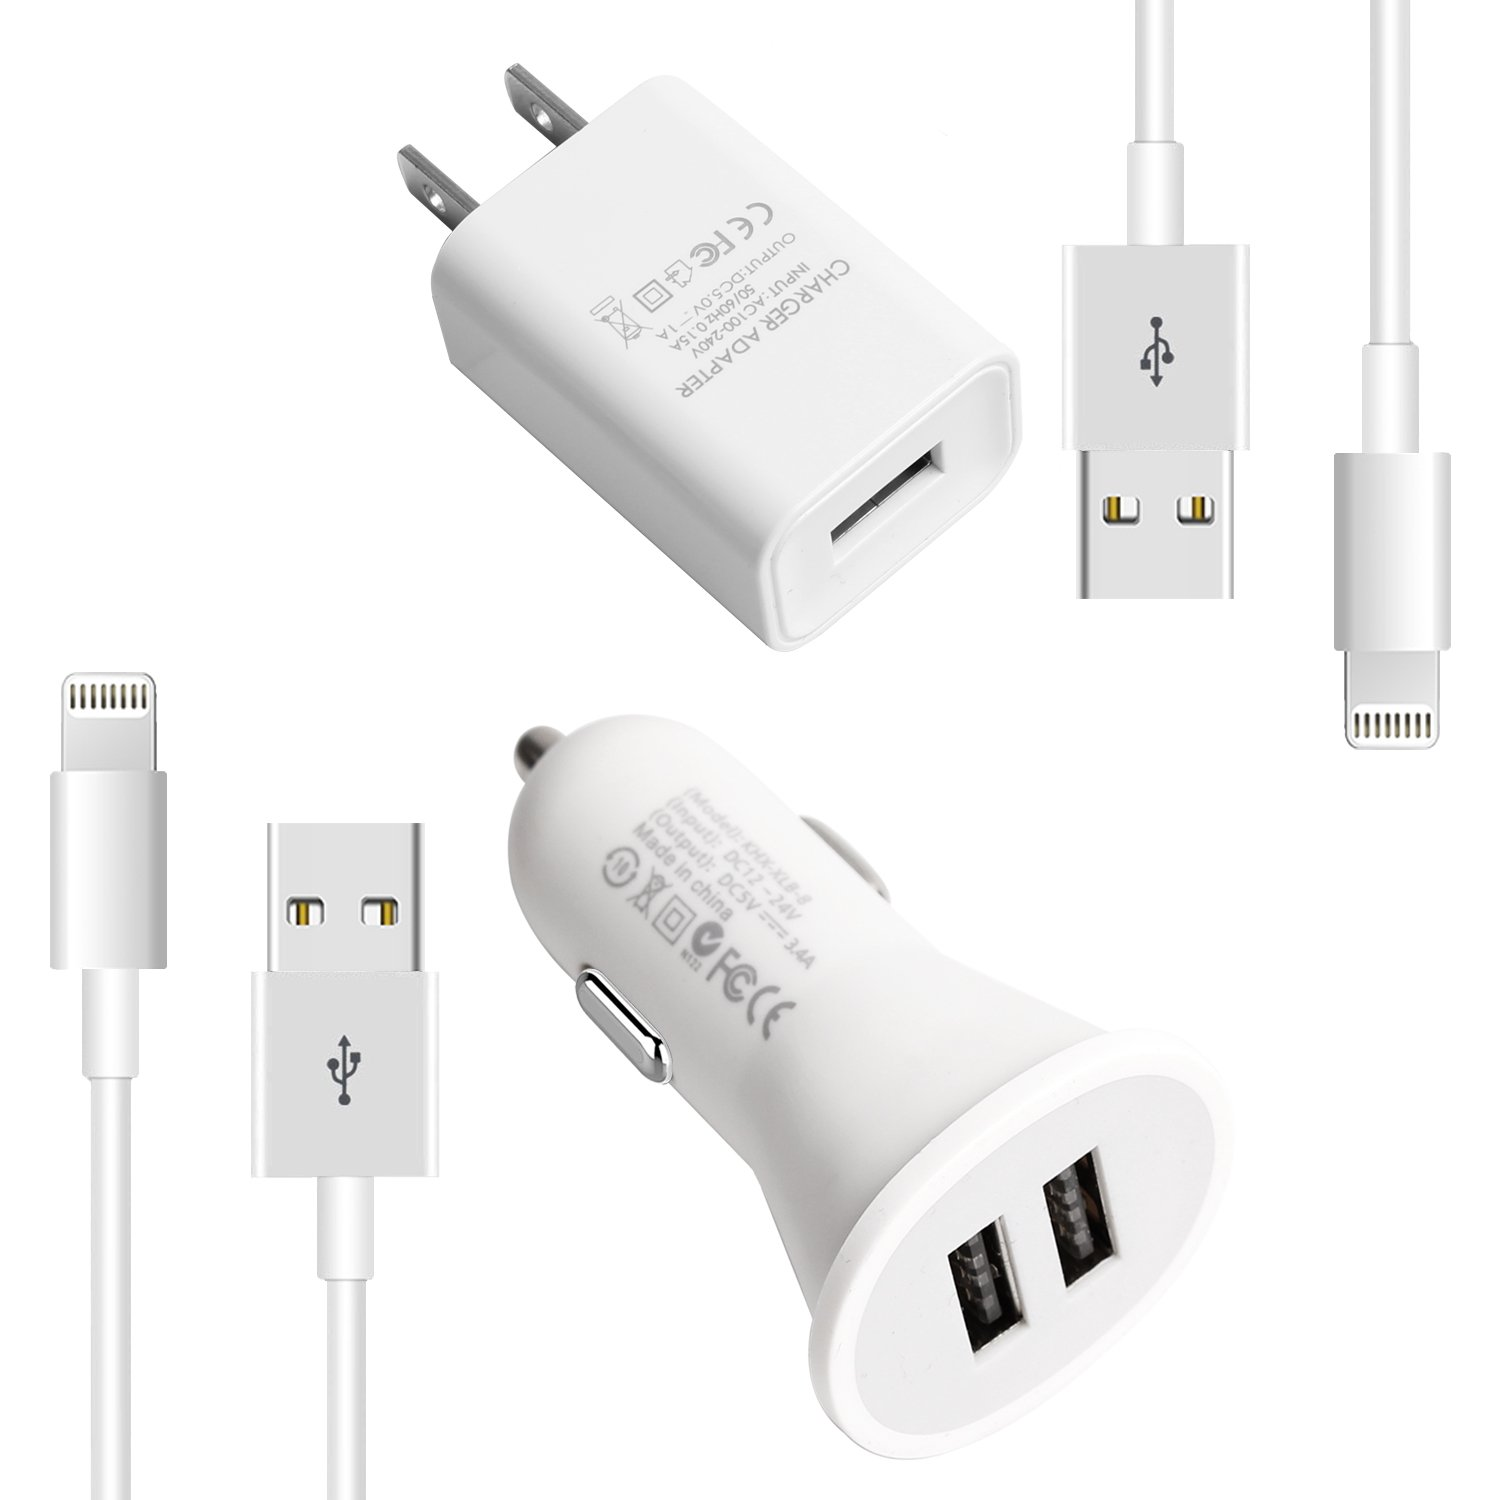 youcoulee Phone Charger Kit (Dual USB Car Charger+Wall Charger+2 X Lightning Cables) Compatible with iPhone X /8/7 / 6s / 5s /Plus, iPad Pro/Air 2 / Mini and More